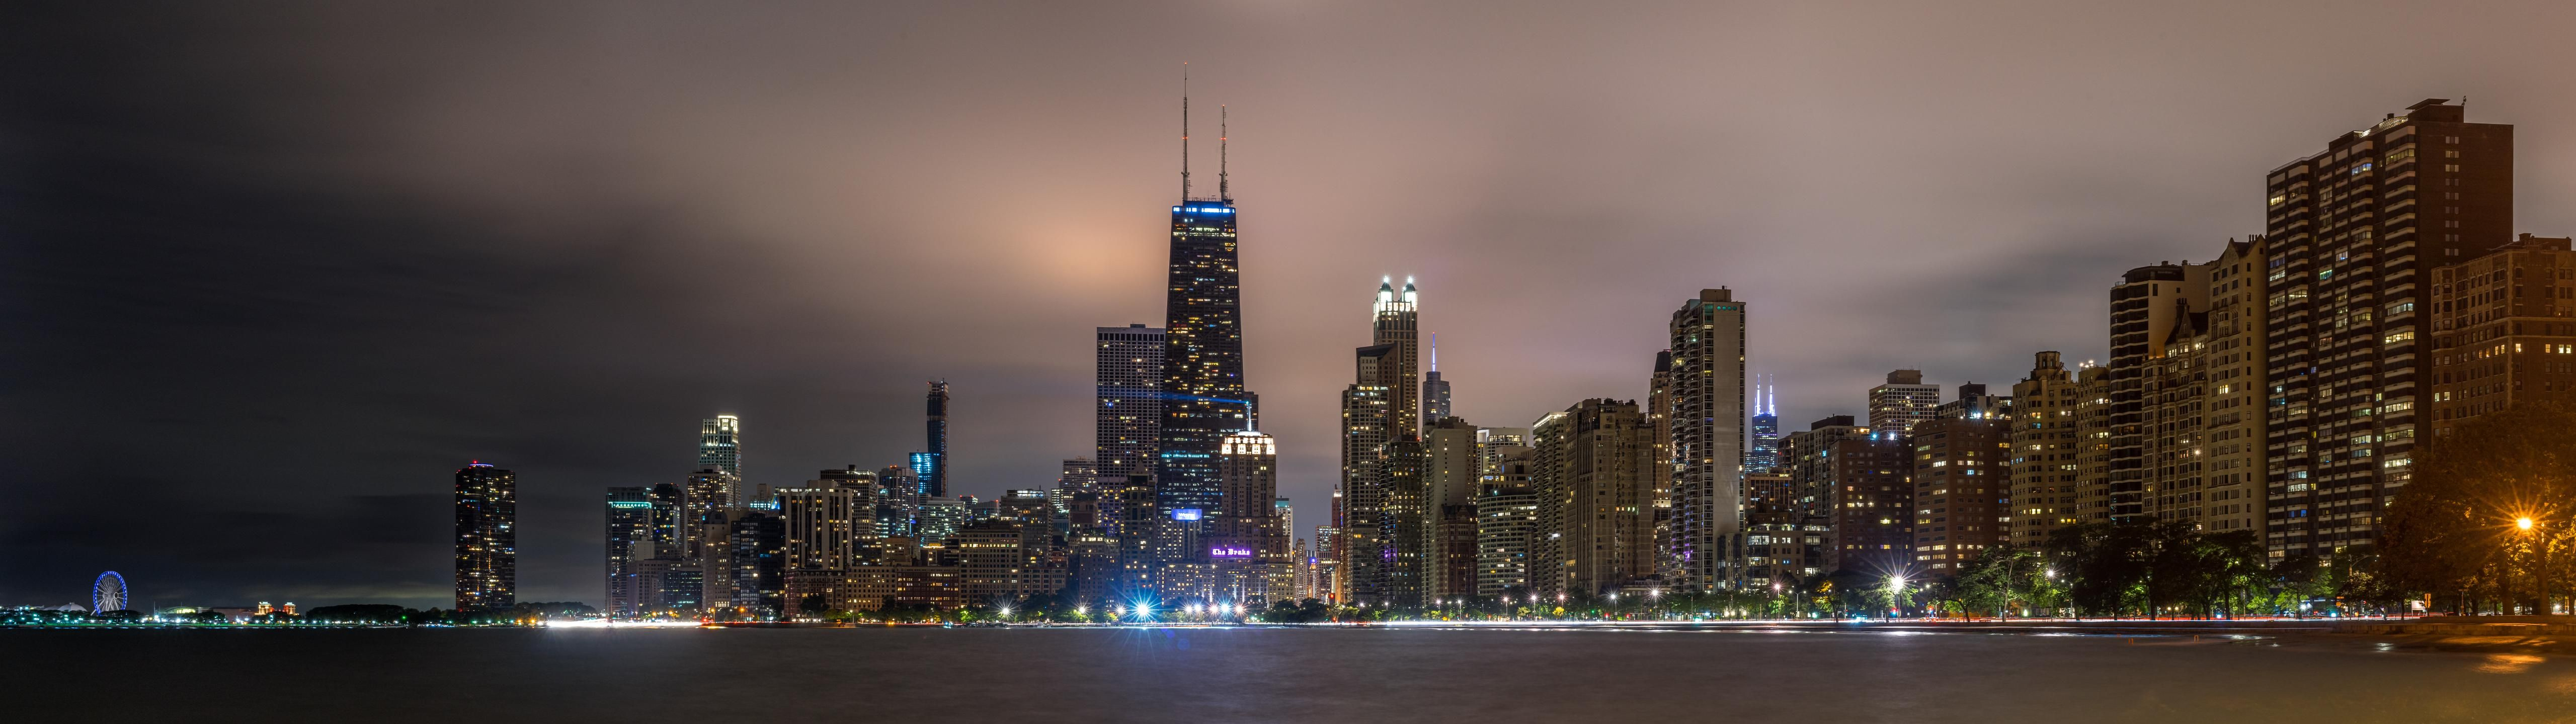 Chicago Skyline for Dual Monitors wallpaper (With images